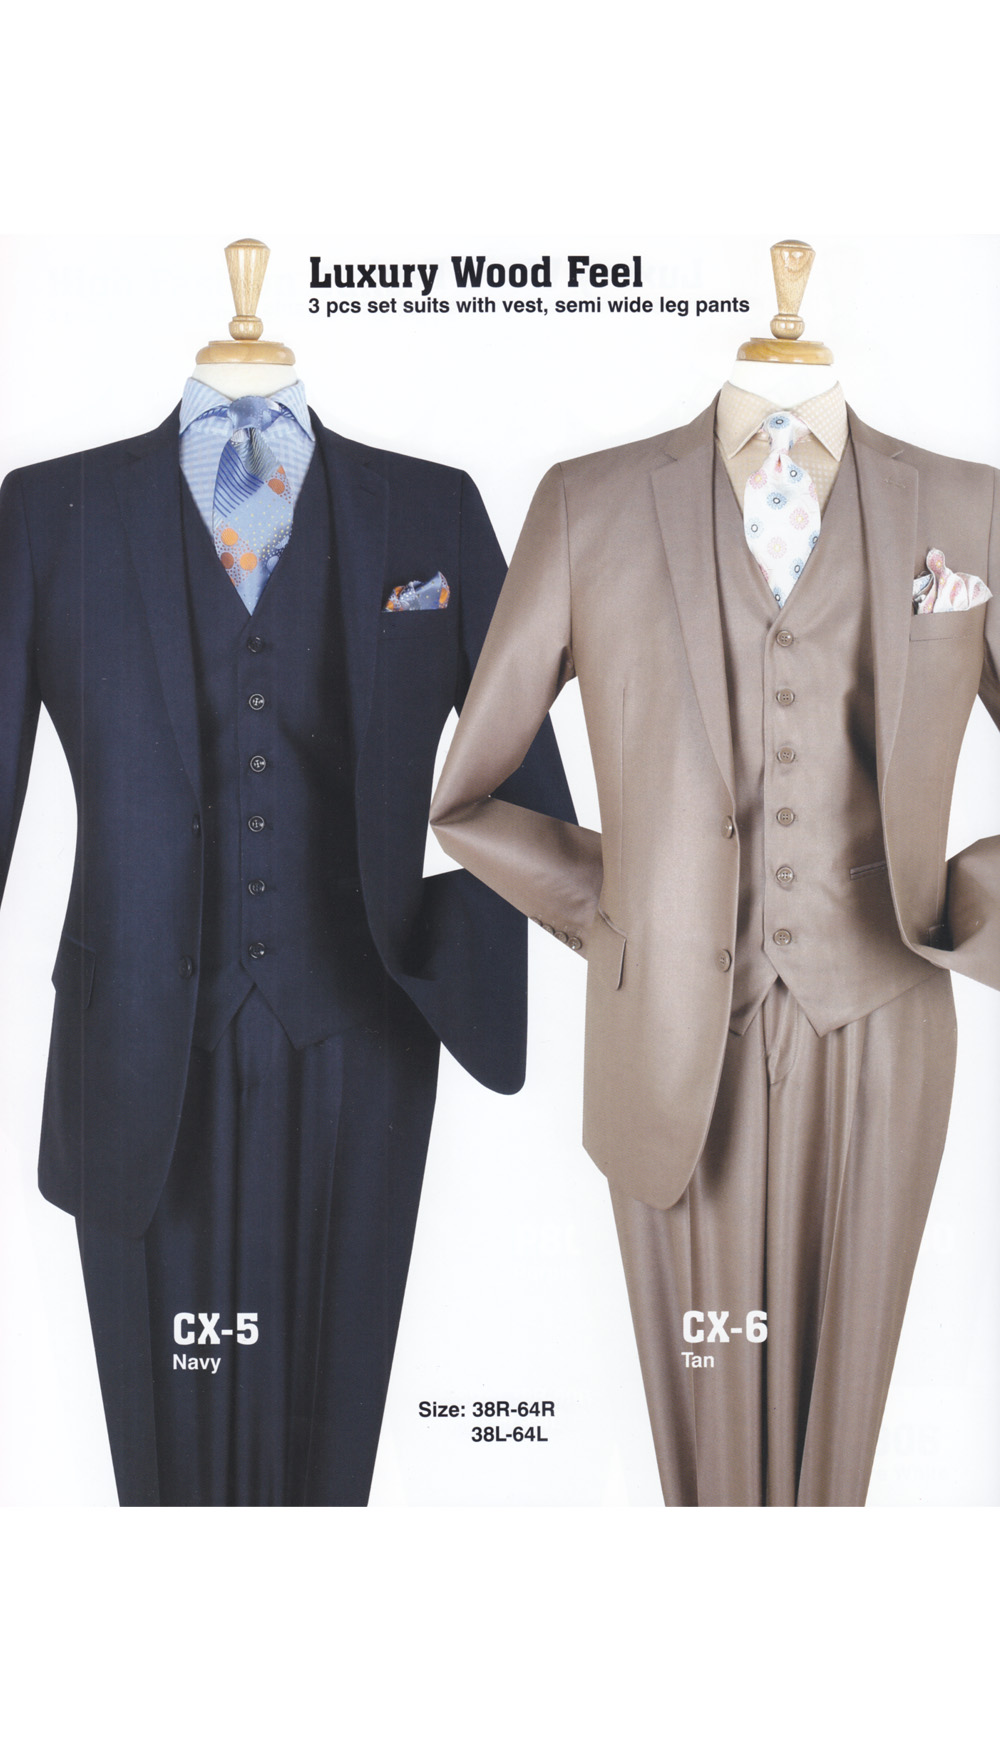 High Fashion Men Suits CX-6-CO